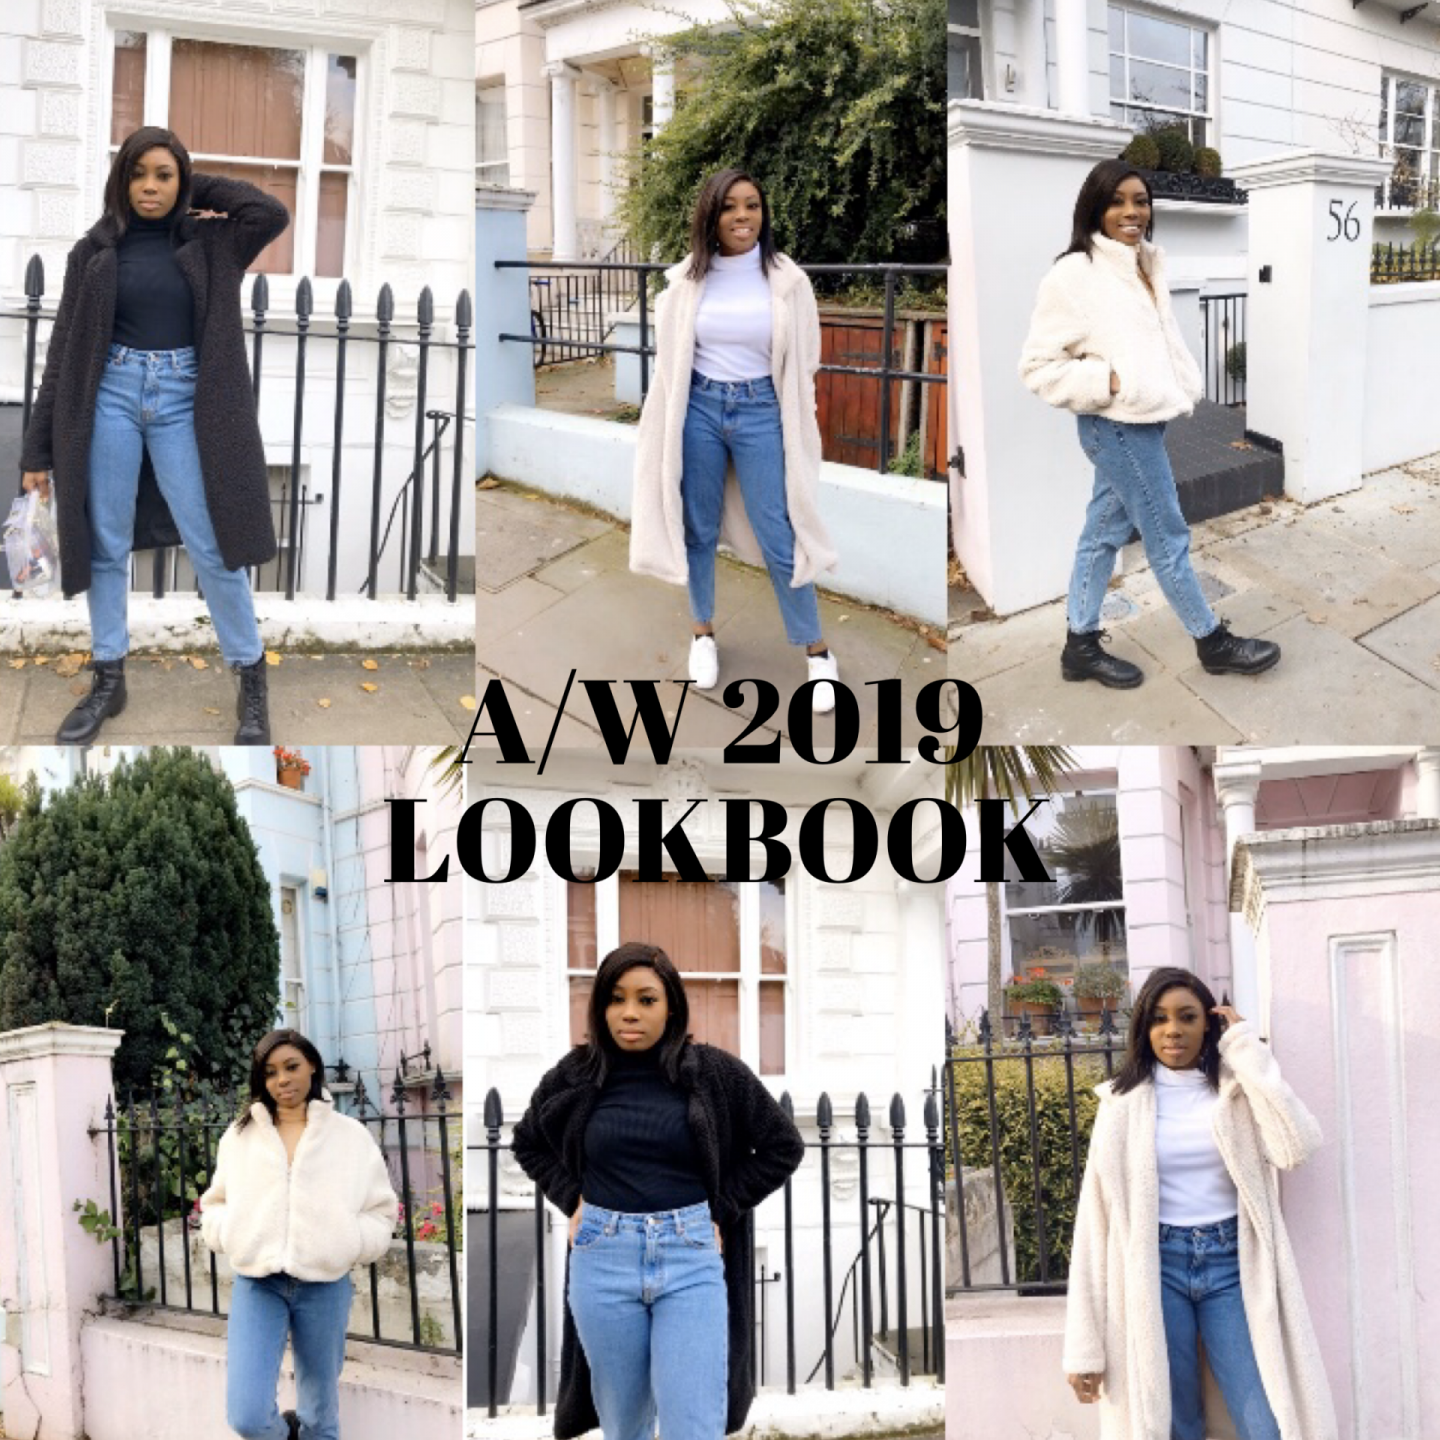 Autumn / Winter 2019 Lookbook